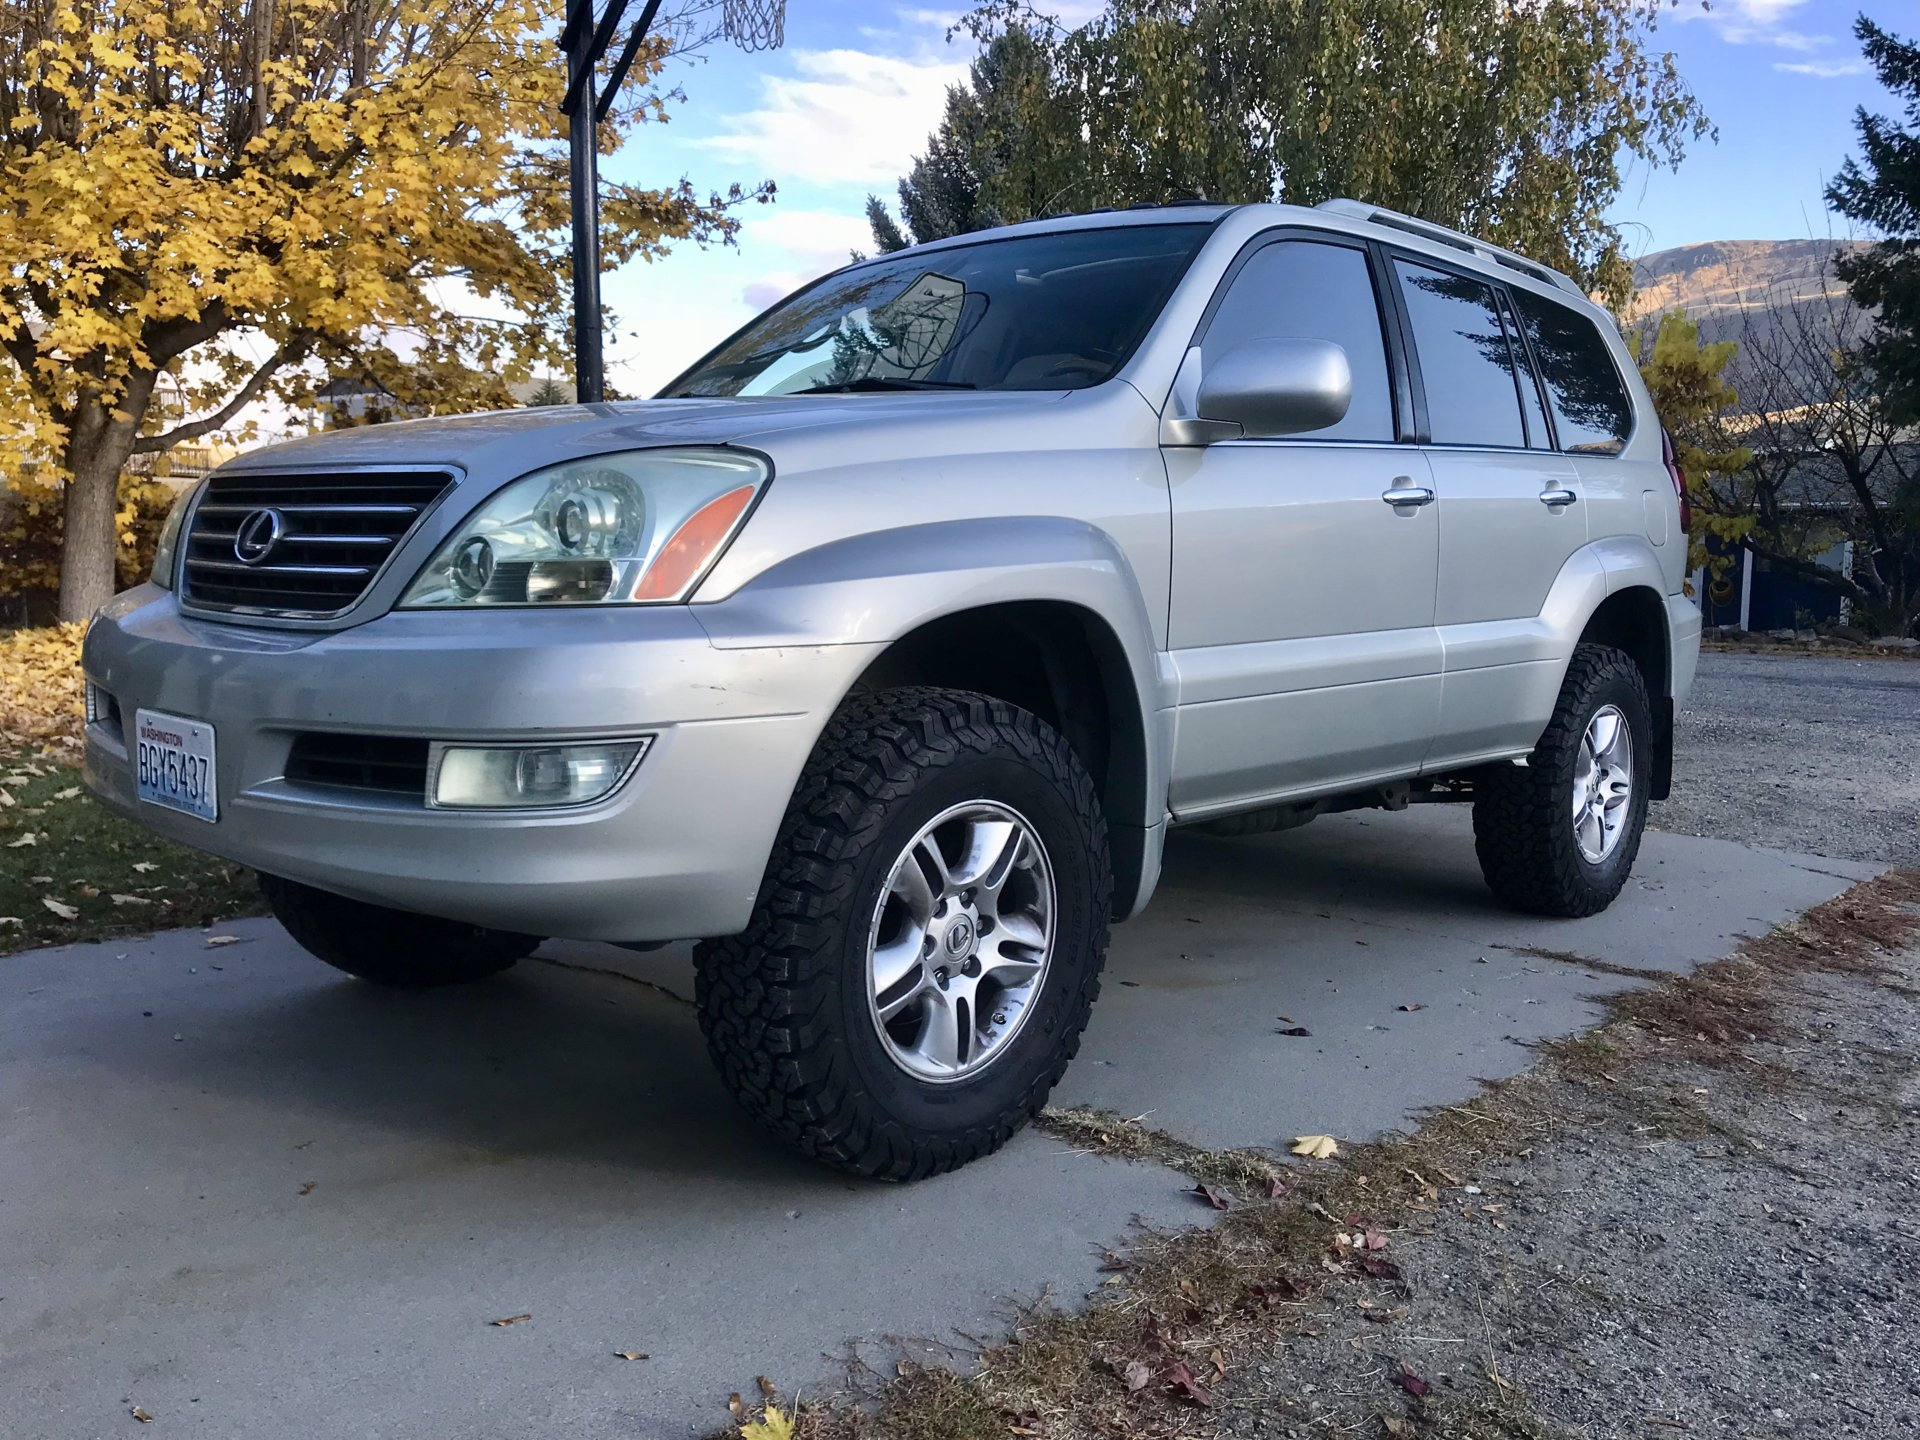 GX470 Wheel/Tire/Lift Picture Combination Thread | Page 3 | IH8MUD Forum